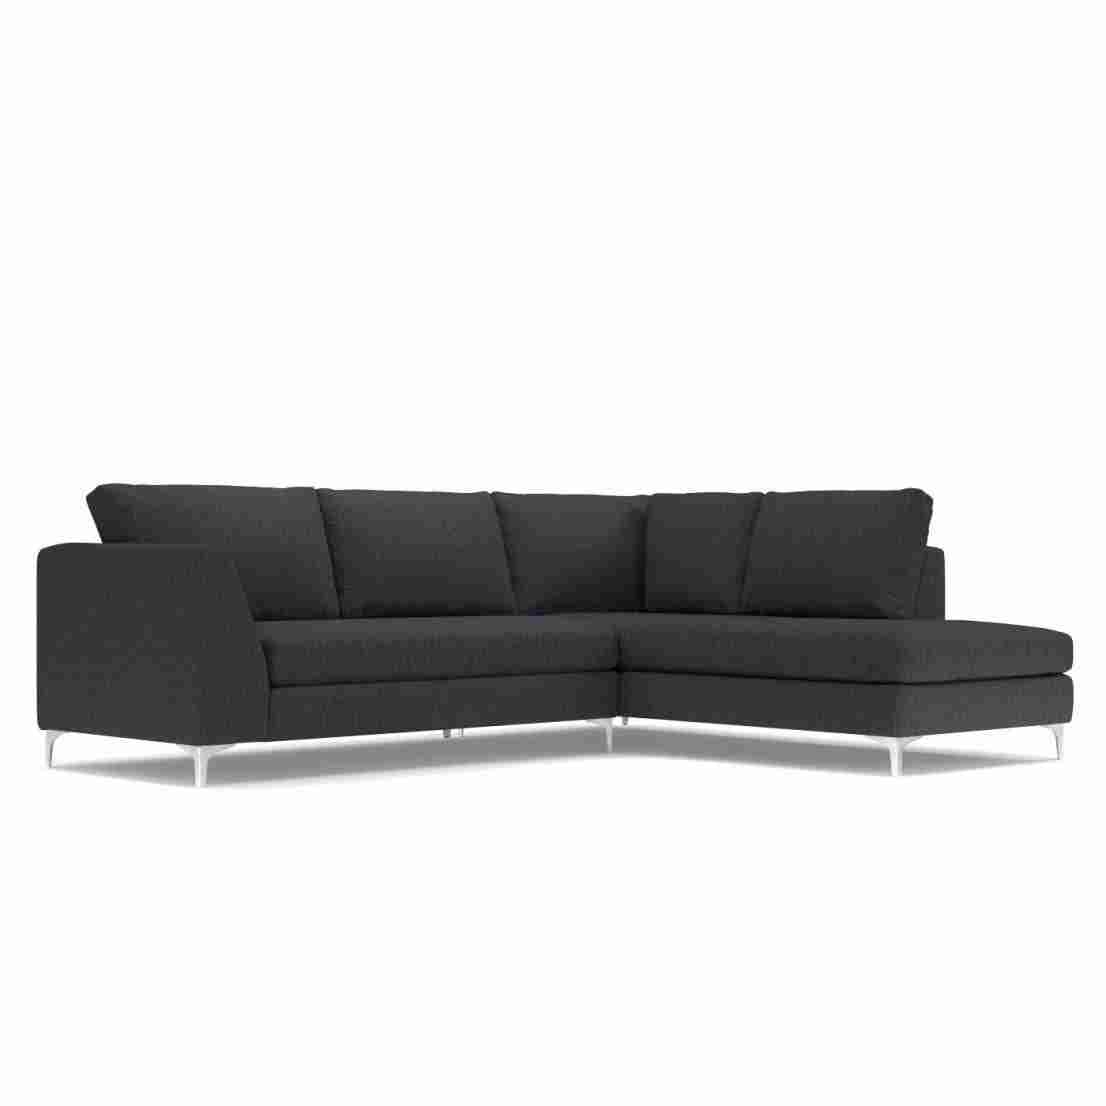 Affordable Custom Sectional Sofa | Cincinnatitaxi Intended For Egan Ii Cement Sofa Sectionals With Reversible Chaise (Image 3 of 25)